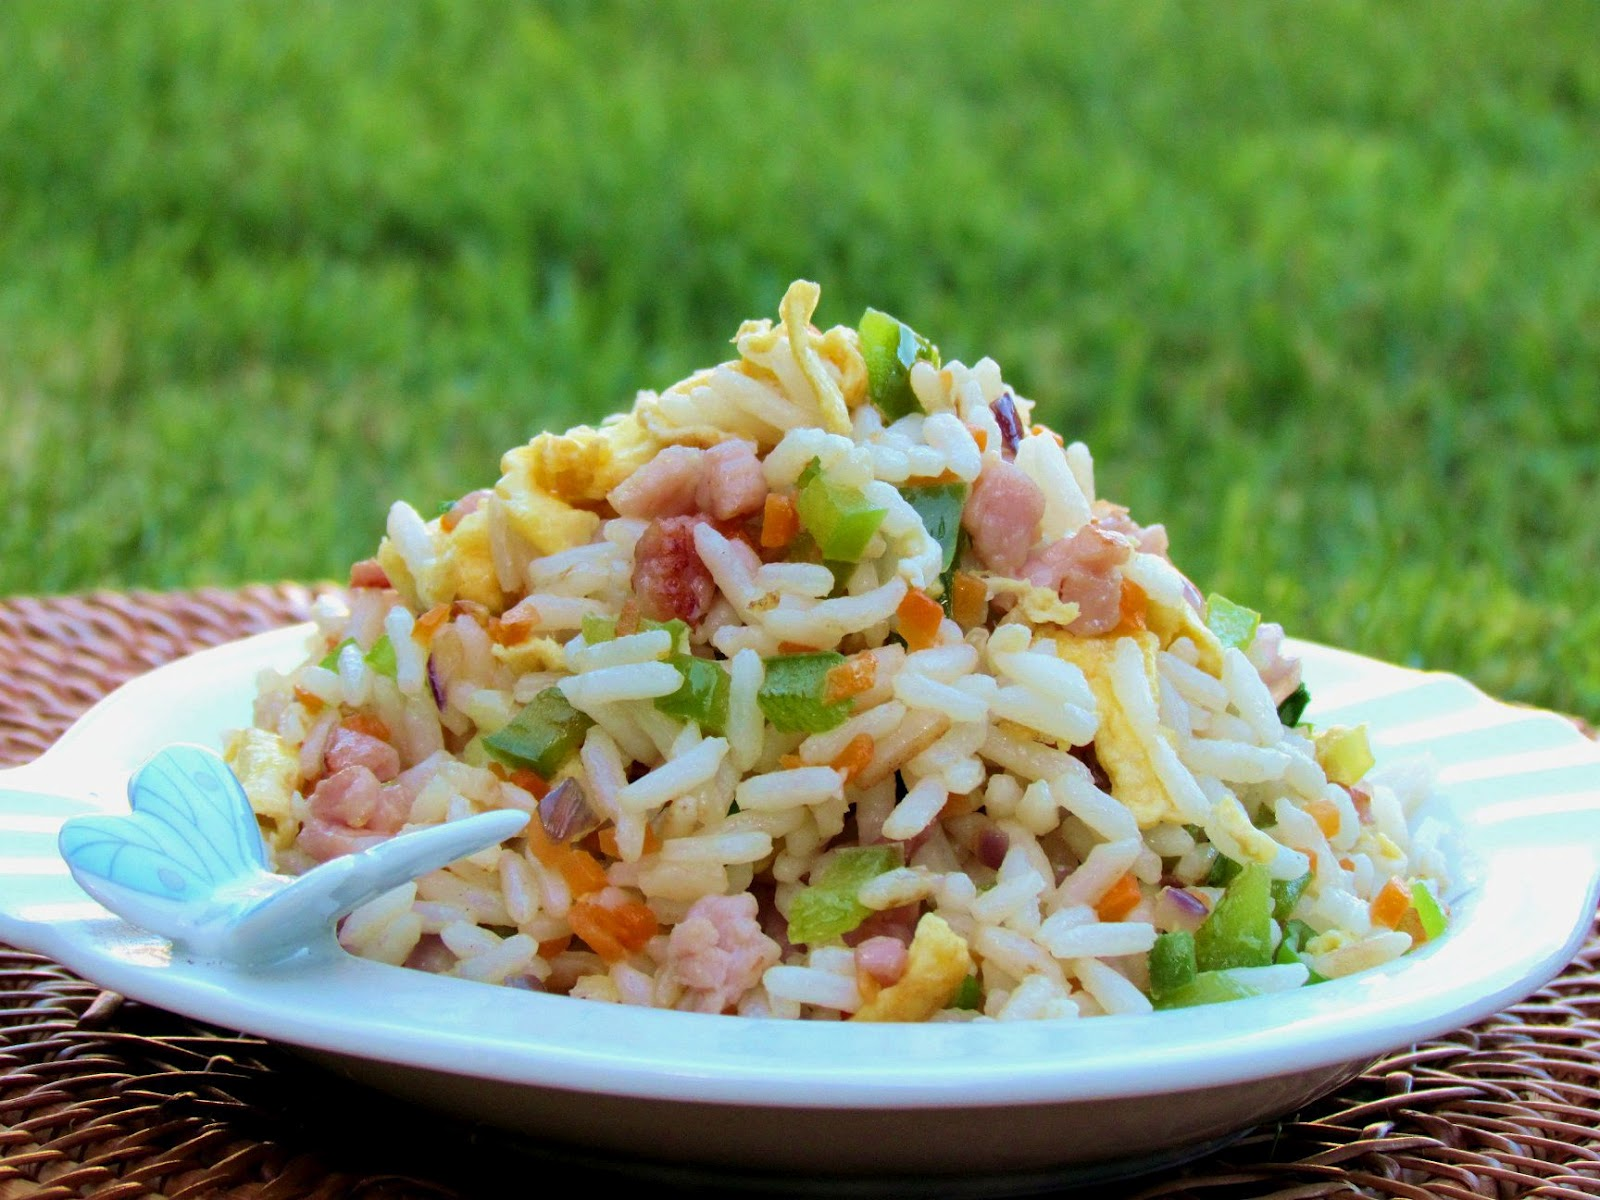 Fried rice with bacon and vegetables ccuart Choice Image